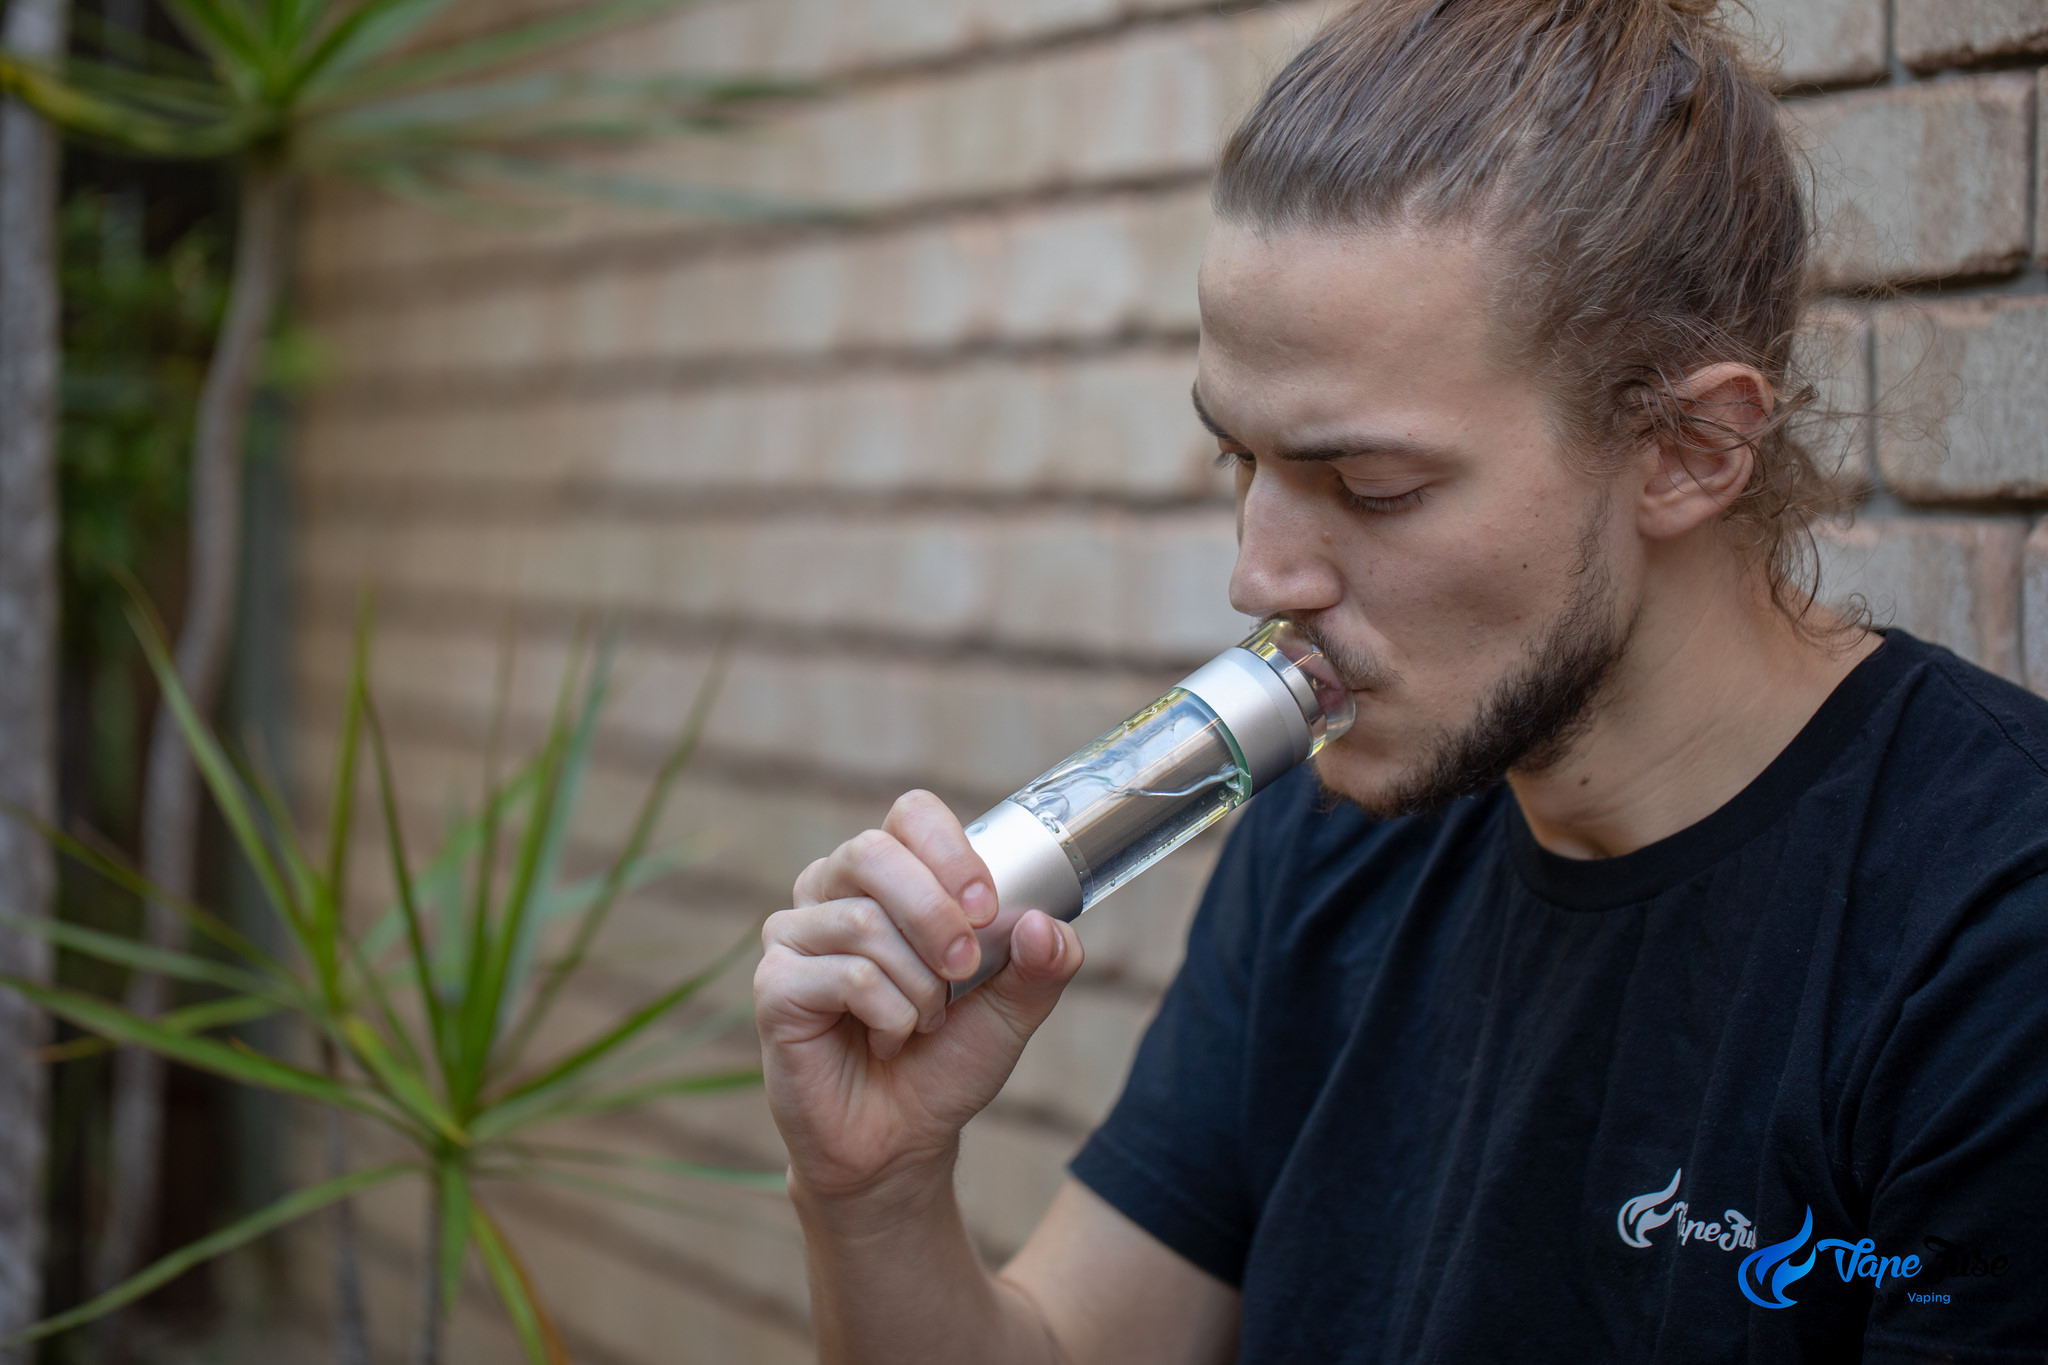 Hydrology9 Vaporizer in use